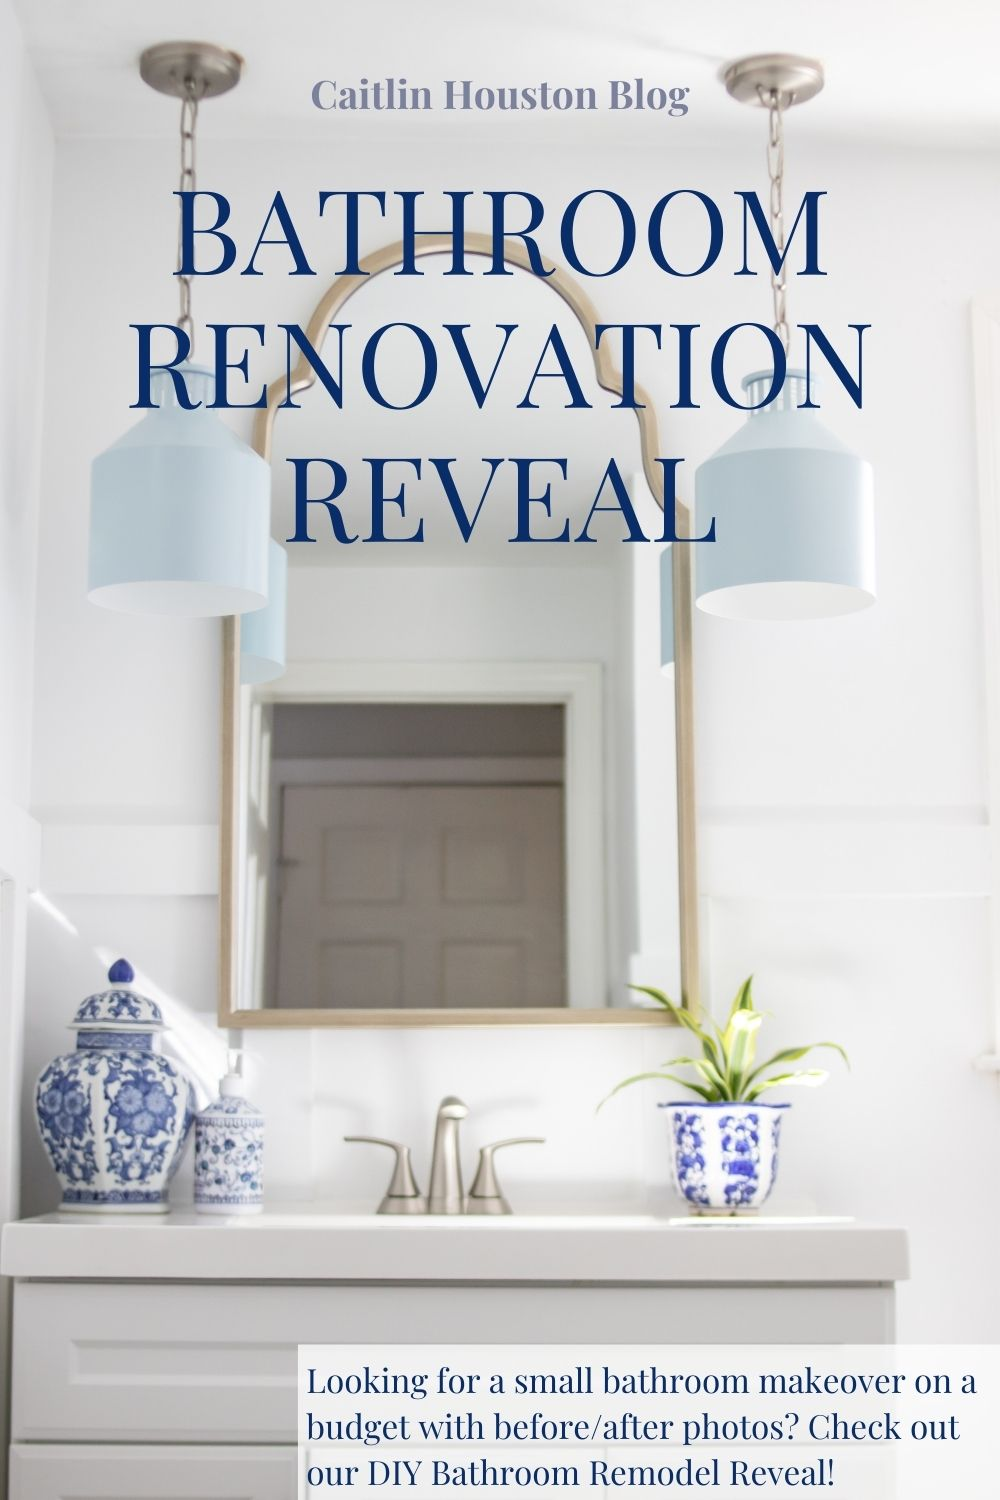 Bathroom Renovation Reveal - Small bathroom makeover on a budget with before/after photos - See a DIY Bathroom Remodel Reveal with Montauk Pendant Light Fixture in Light Blue, White Vanity, and more.